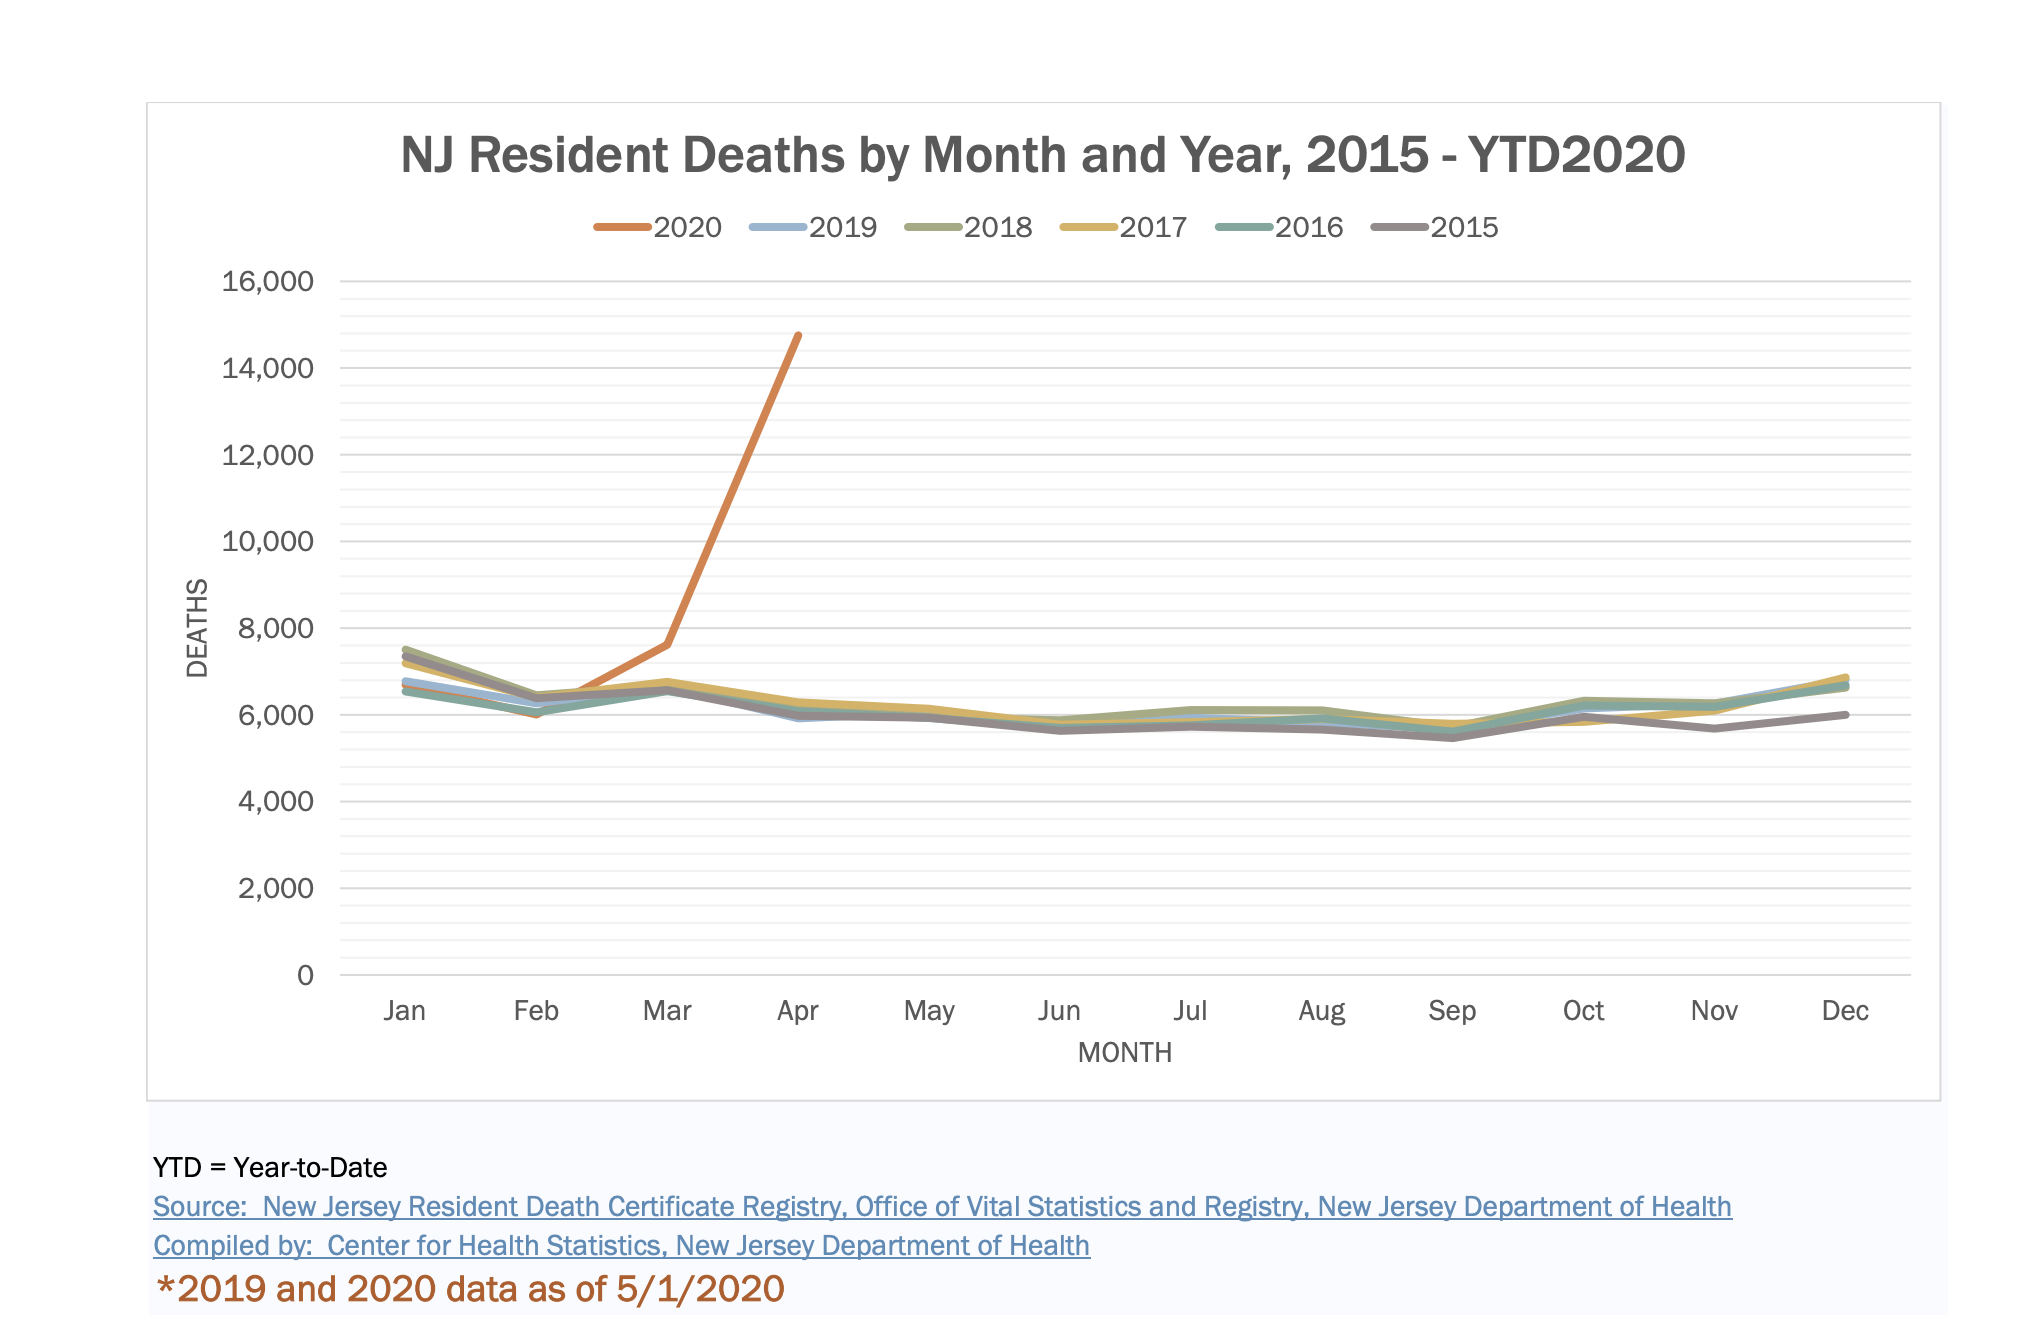 Data from the New Jersey Department of Health shows a huge increase in resident deaths during the coronavirus pandemic.